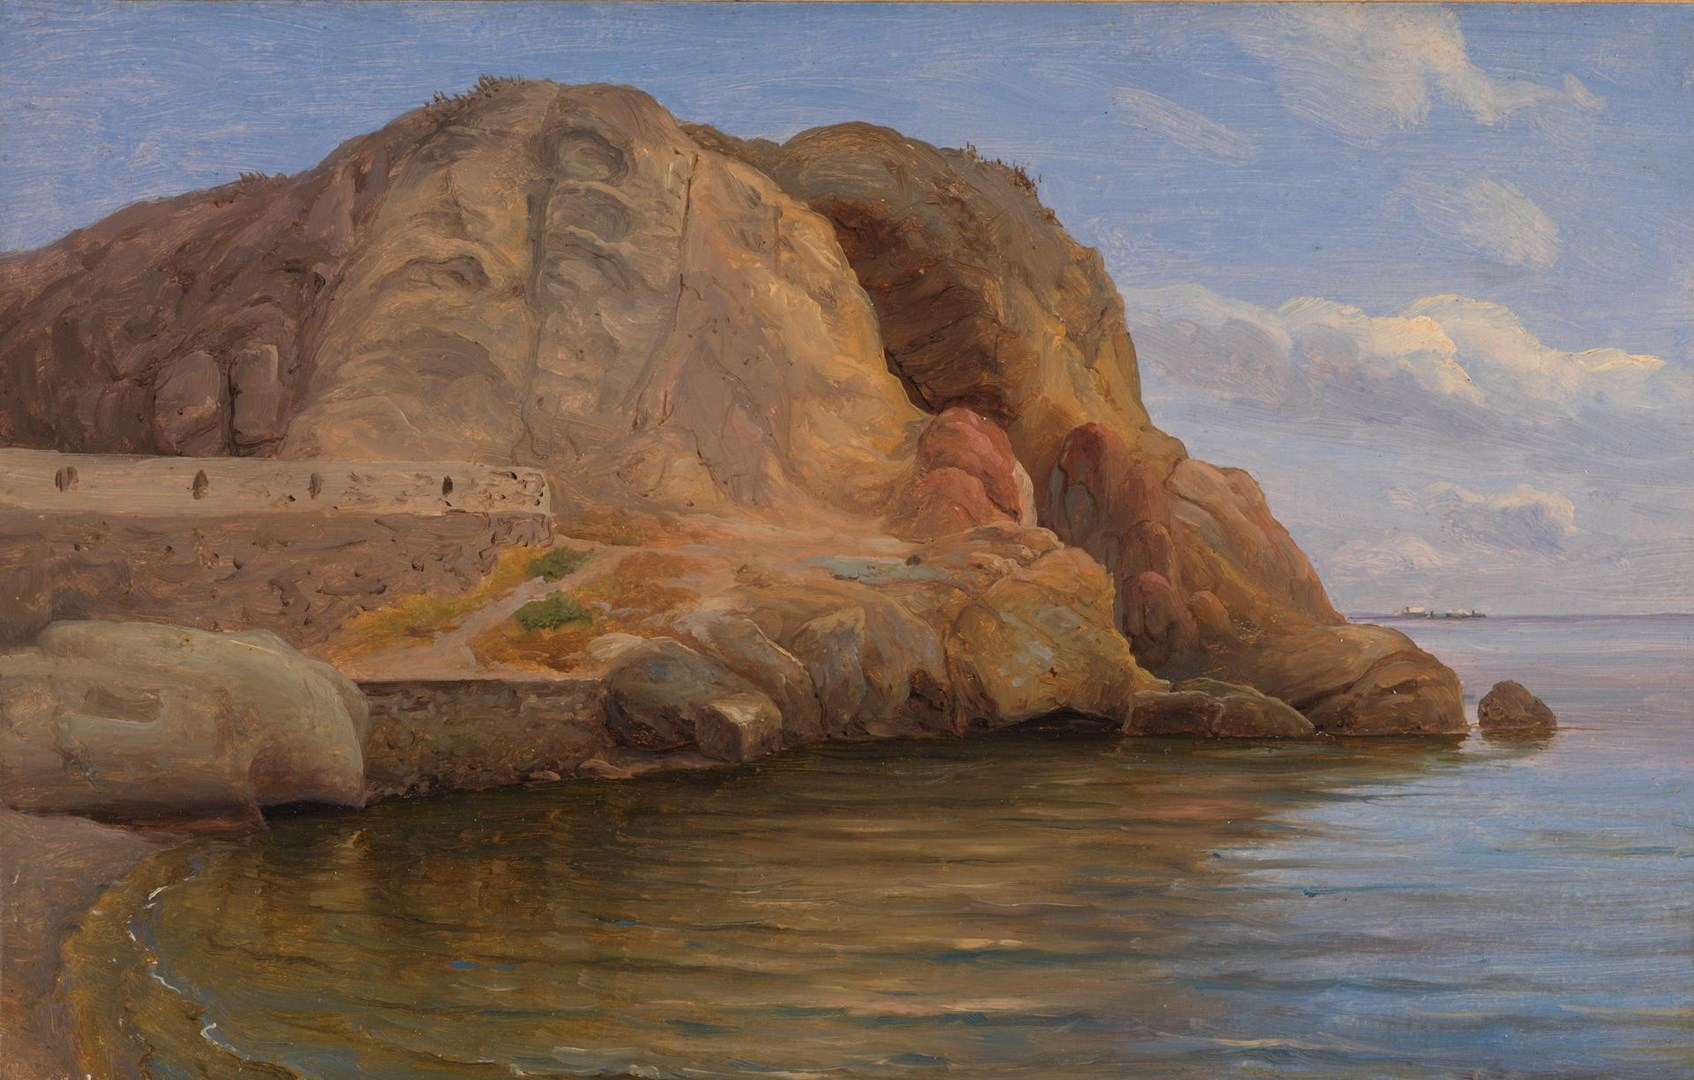 Coast scene, possibly Capri by Thomas Fearnley